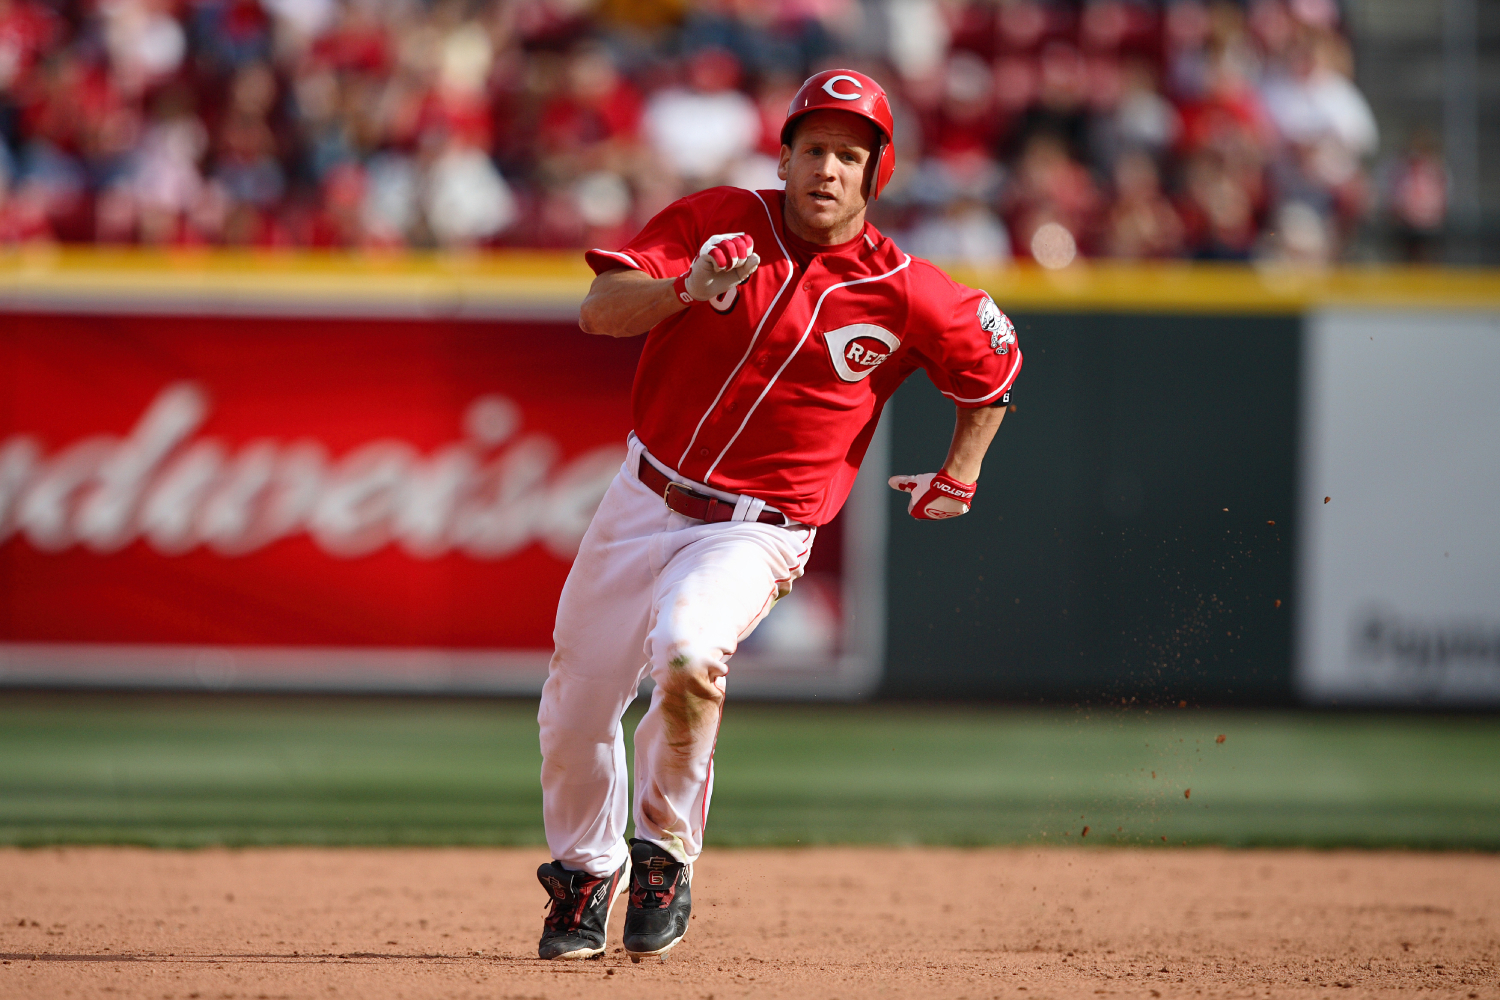 Ryan Freel became a fan favorite while playing for the Cincinnati Reds. He, however, sadly died shortly after his baseball career.